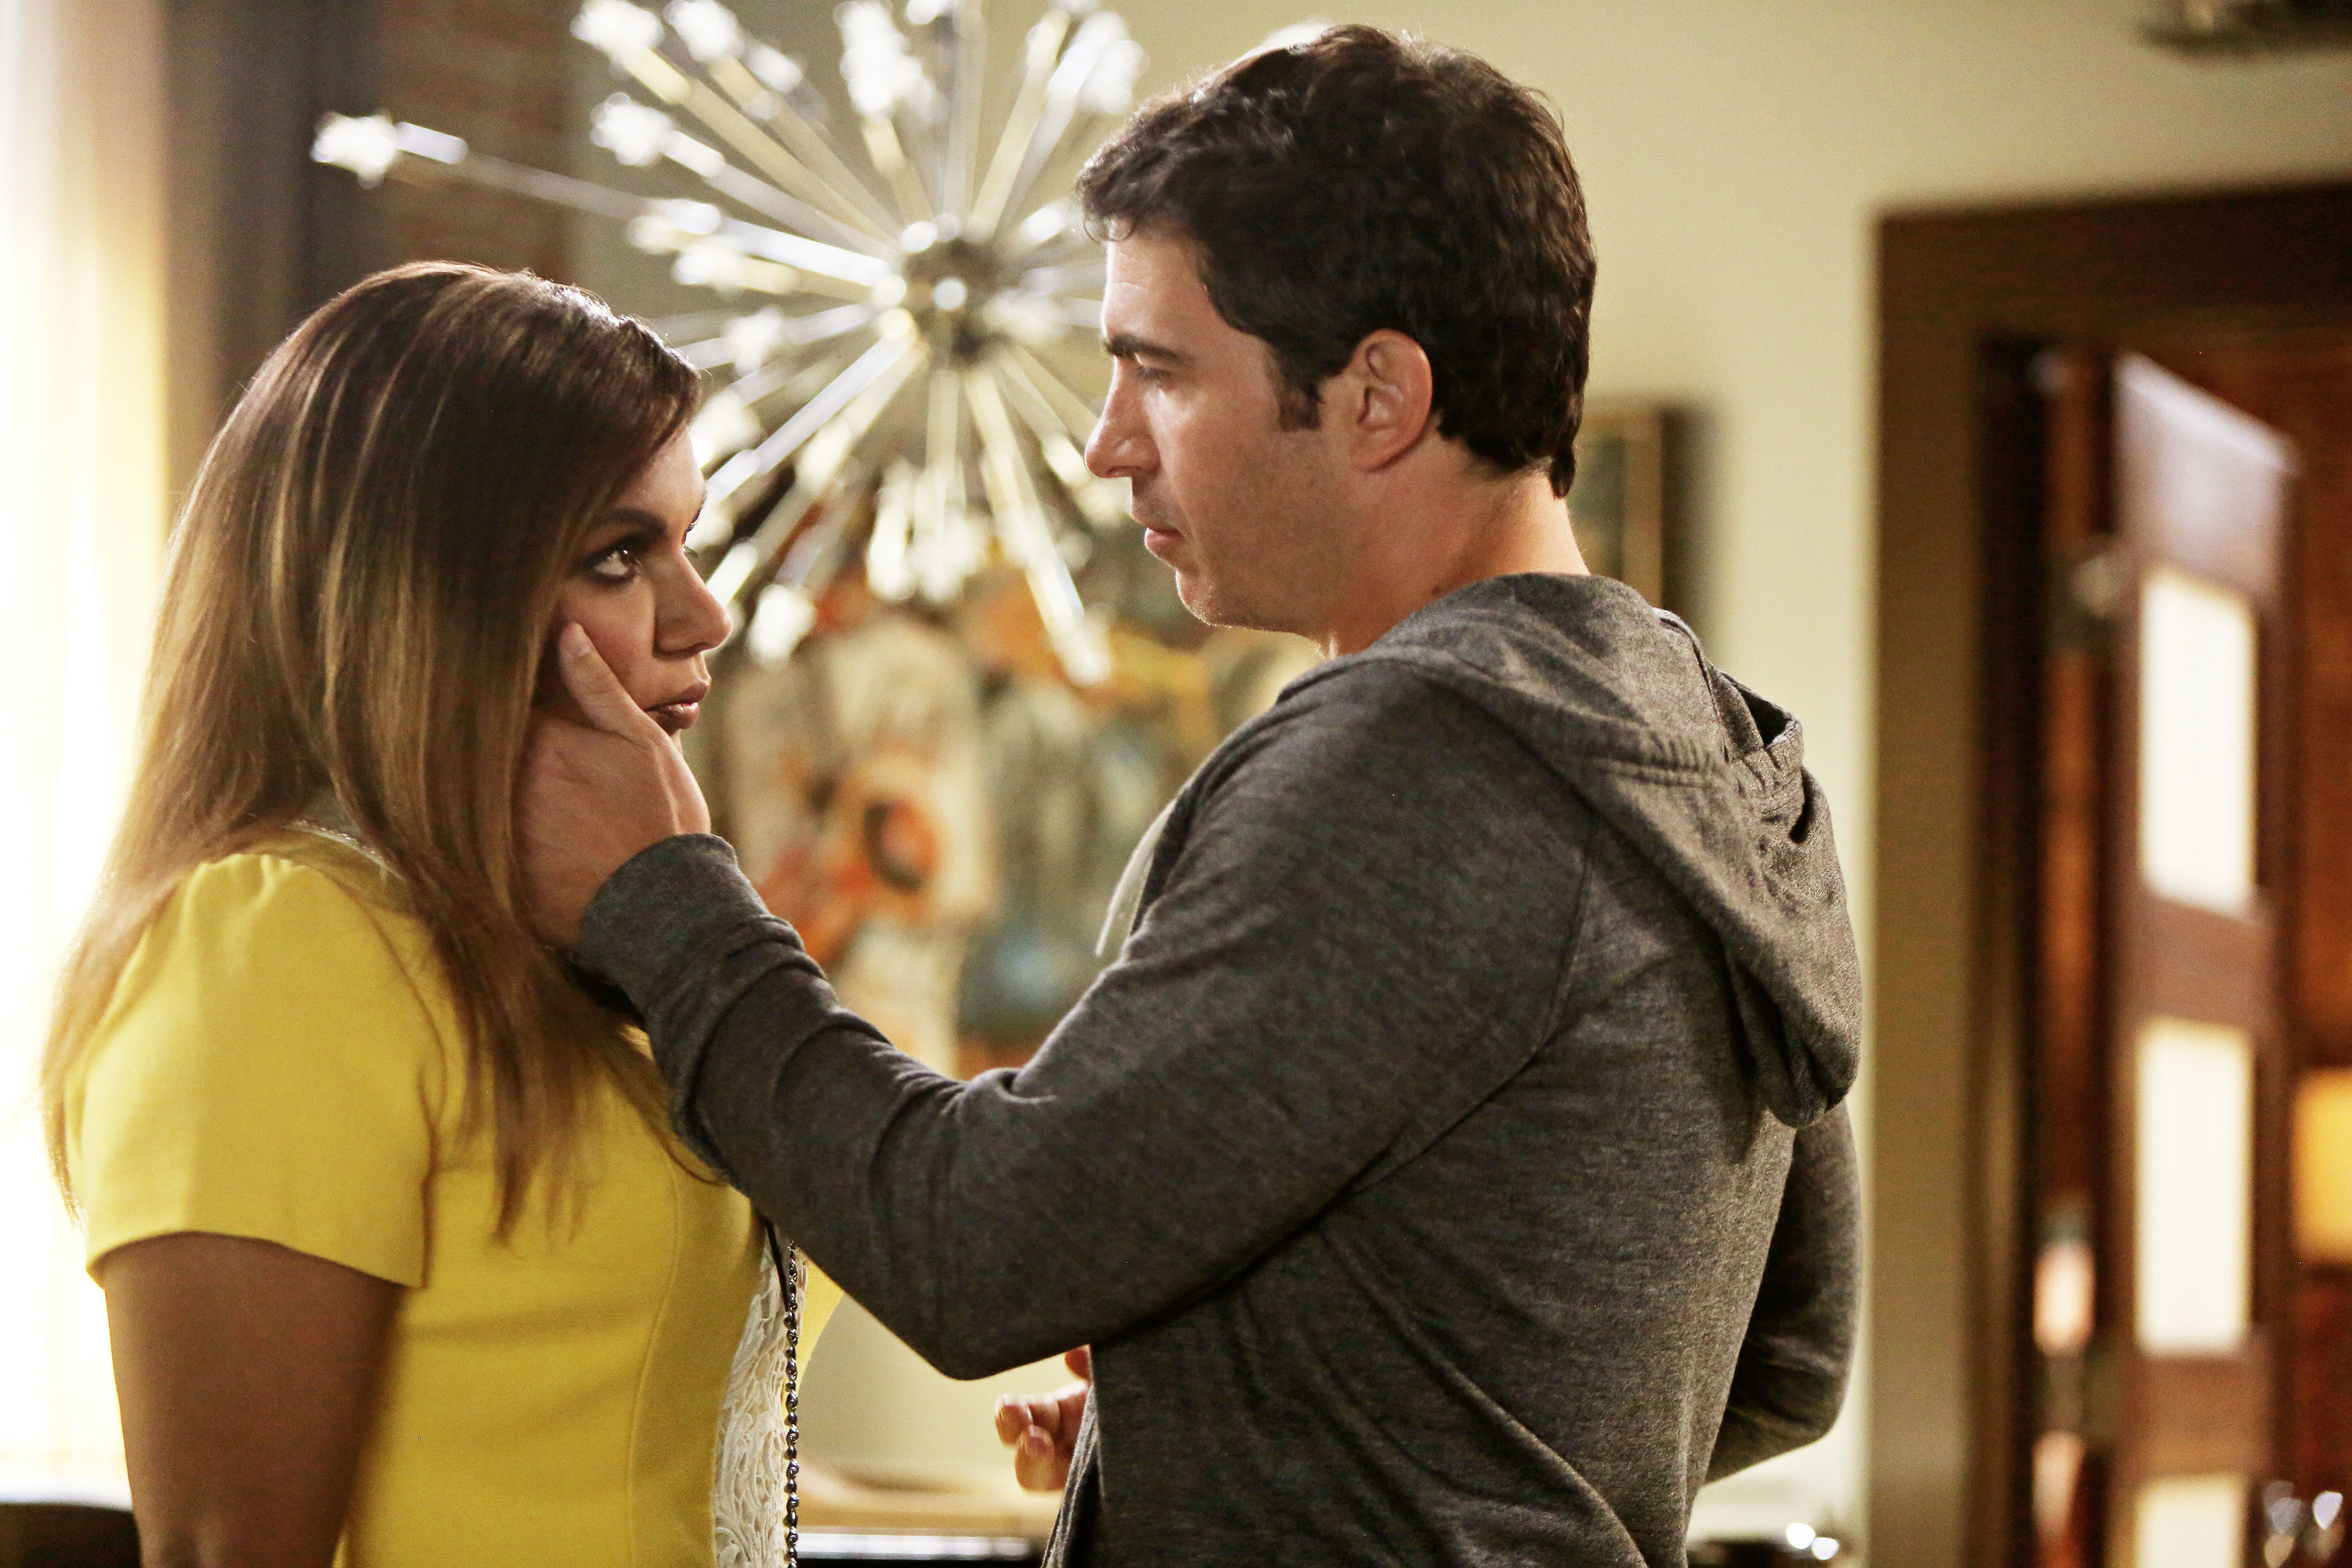 Danny and Mindy